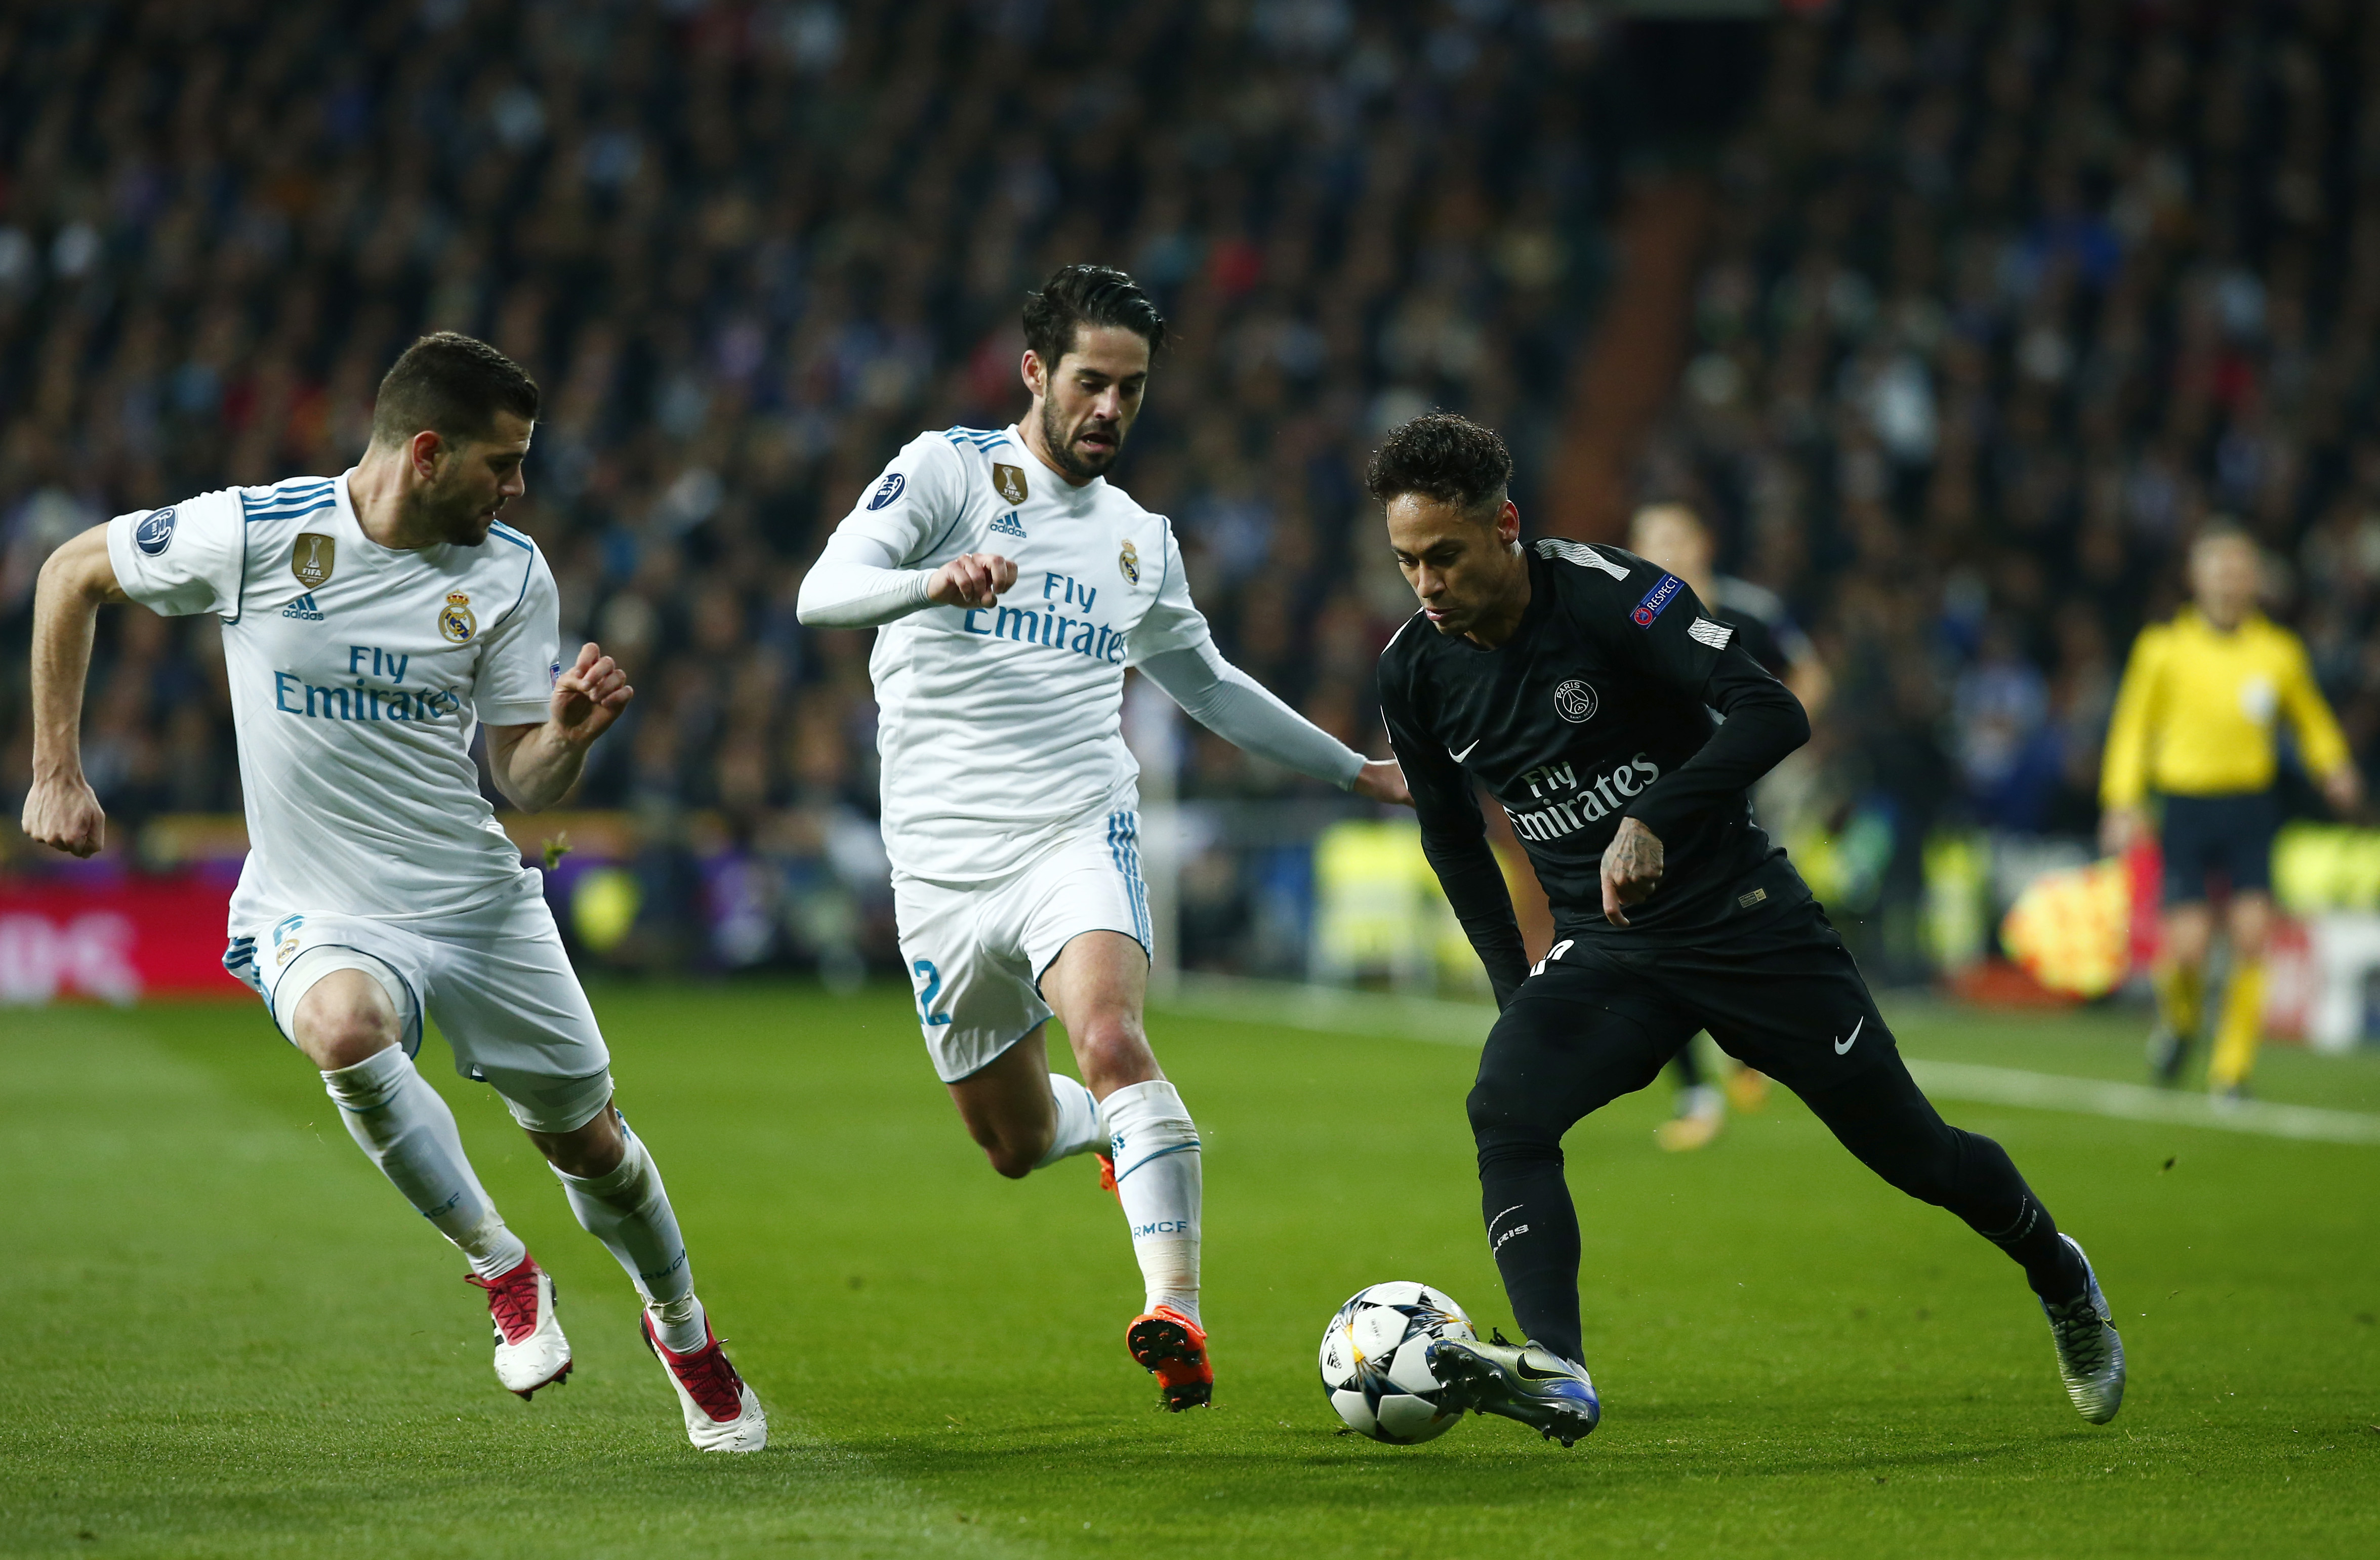 MADRID, SPAIN - FEBRUARY 14:  Nacho Fernandez and Isco of Real Madrid close down Neymar of PSG in action during the UEFA Champions League Round of 16 First Leg match between Real Madrid and Paris Saint-Germain at Bernabeu on February 14, 2018 in Madrid, Spain.  (Photo by Gonzalo Arroyo Moreno/Getty Images)